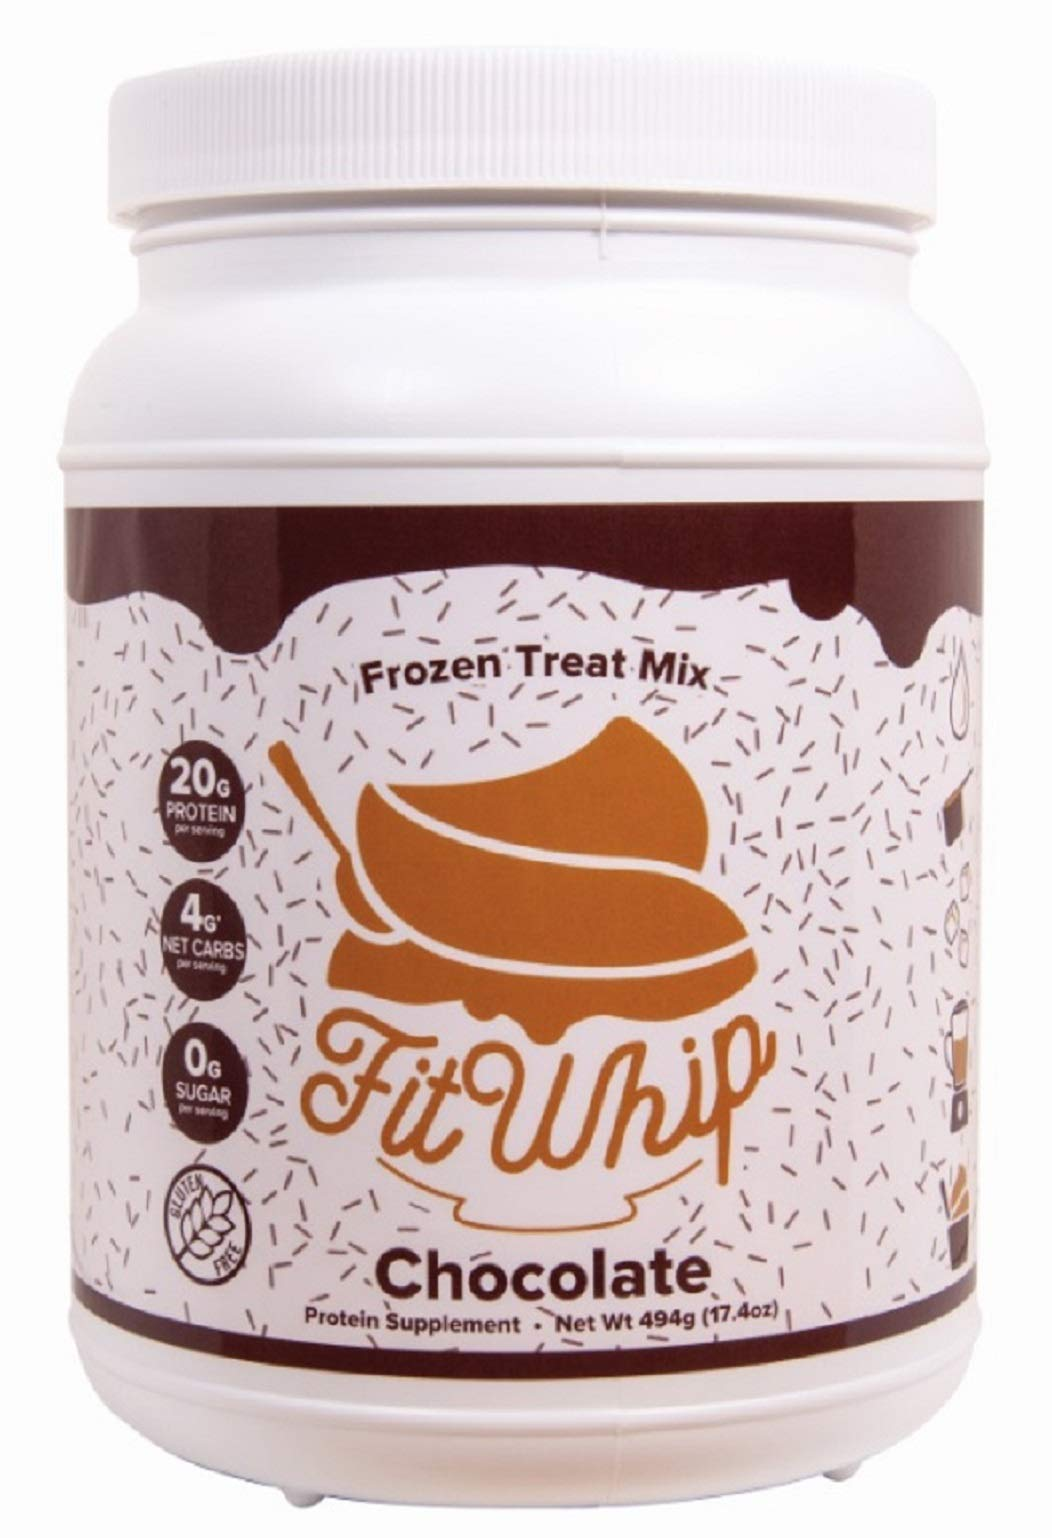 Fit Whip Frozen Treat Mix, Chocolate Flavor | High Protein | Low Carb | Low Fat | High Fiber | Sugar Free | Gluten Free | Keto Friendly | Macro Friendly | WW Friendly | 13 Servings by Fit Whip